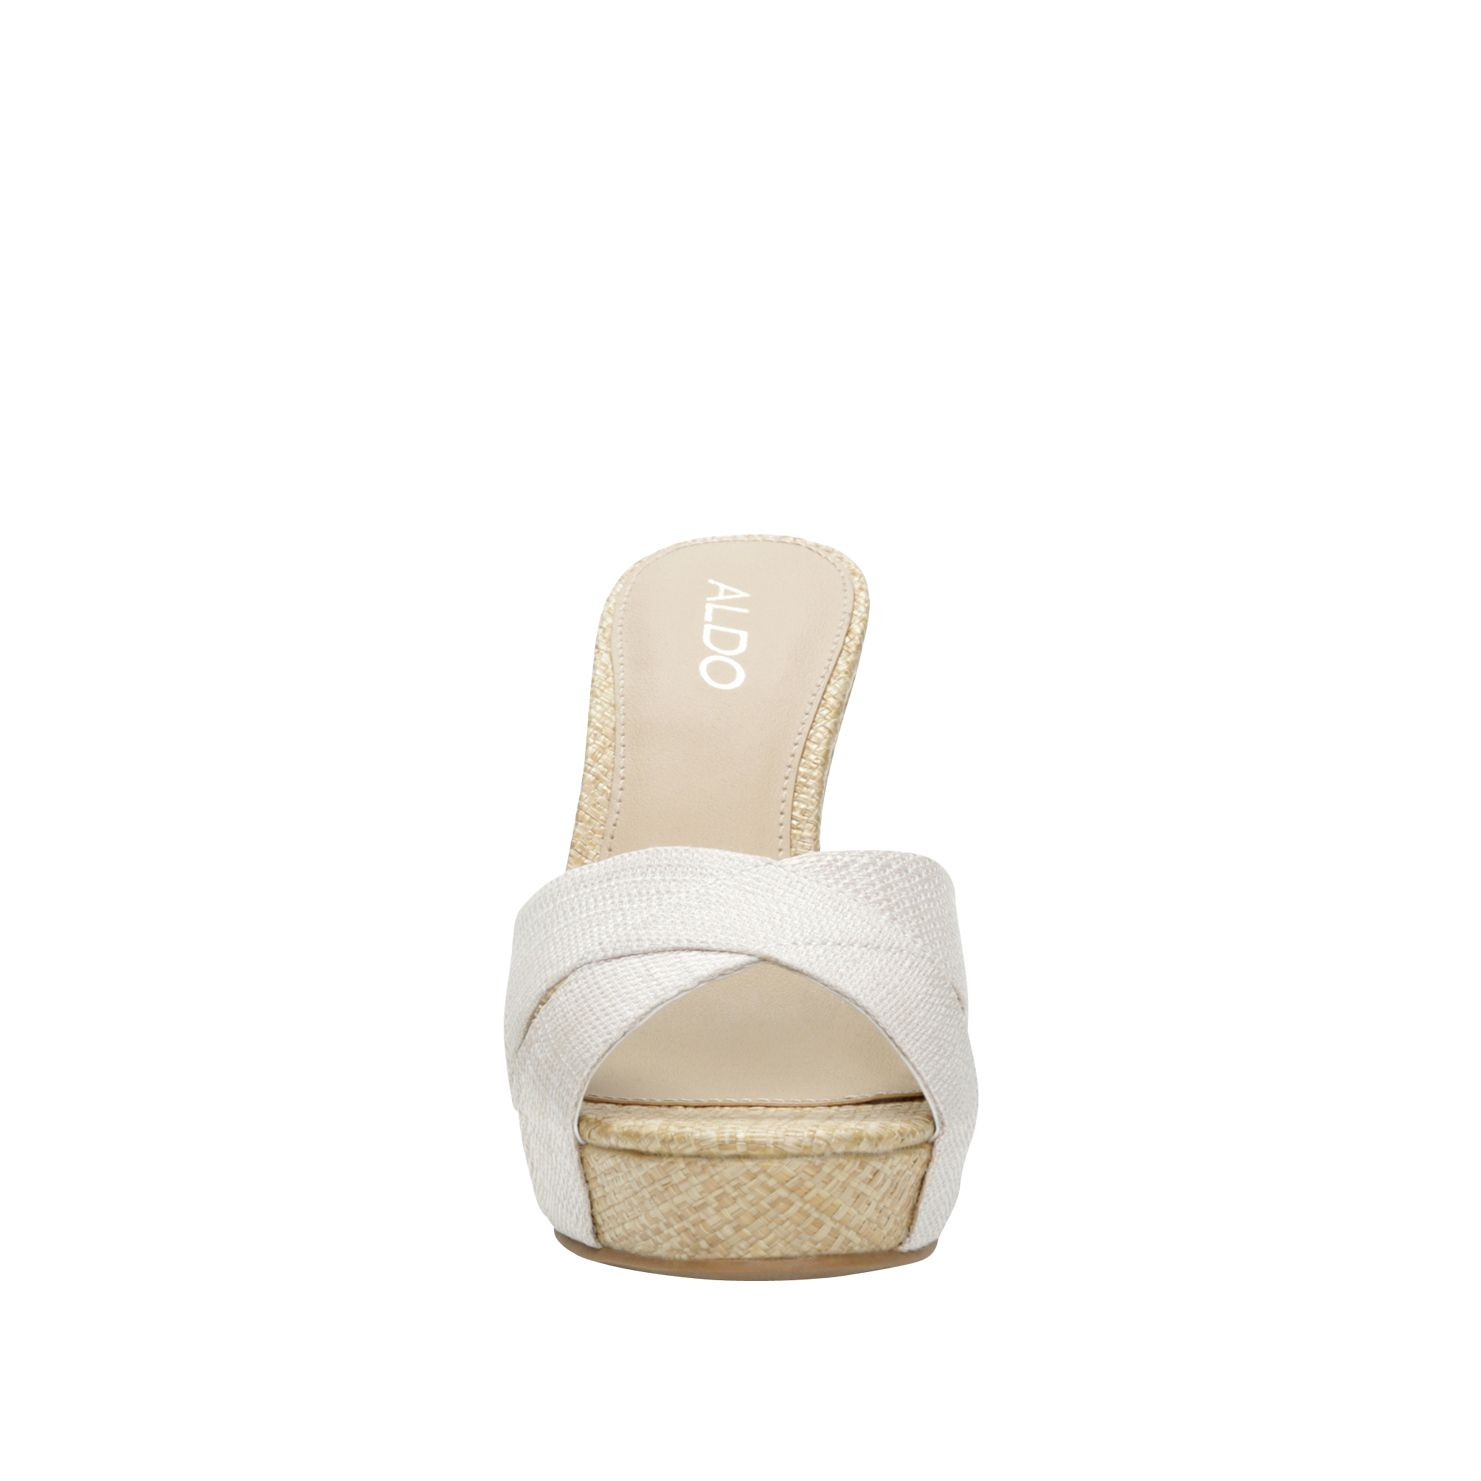 Santeramo wedge espadrille sandals